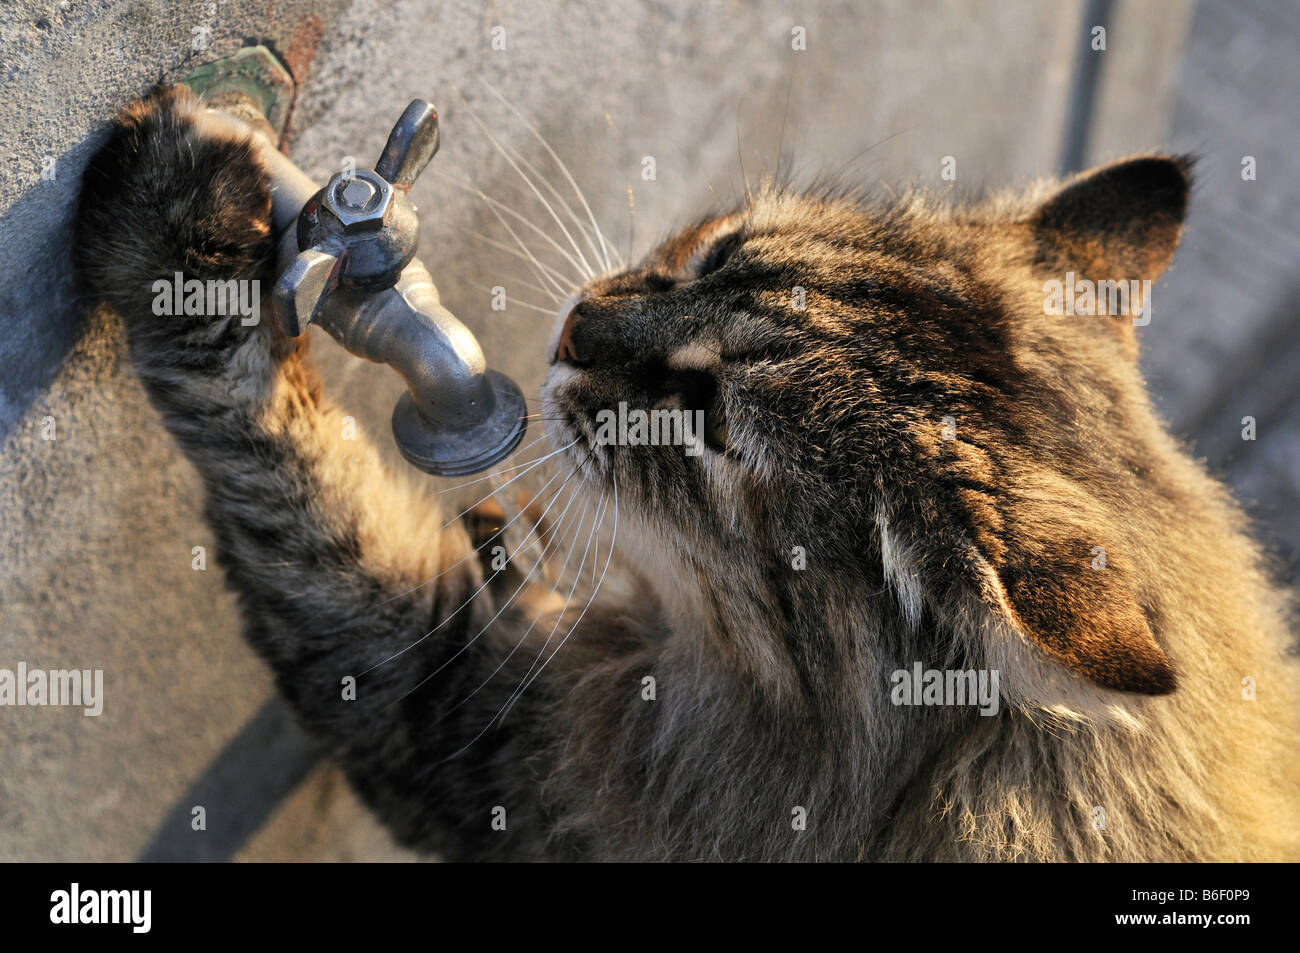 Cat drinking water from a tap Stock Photo